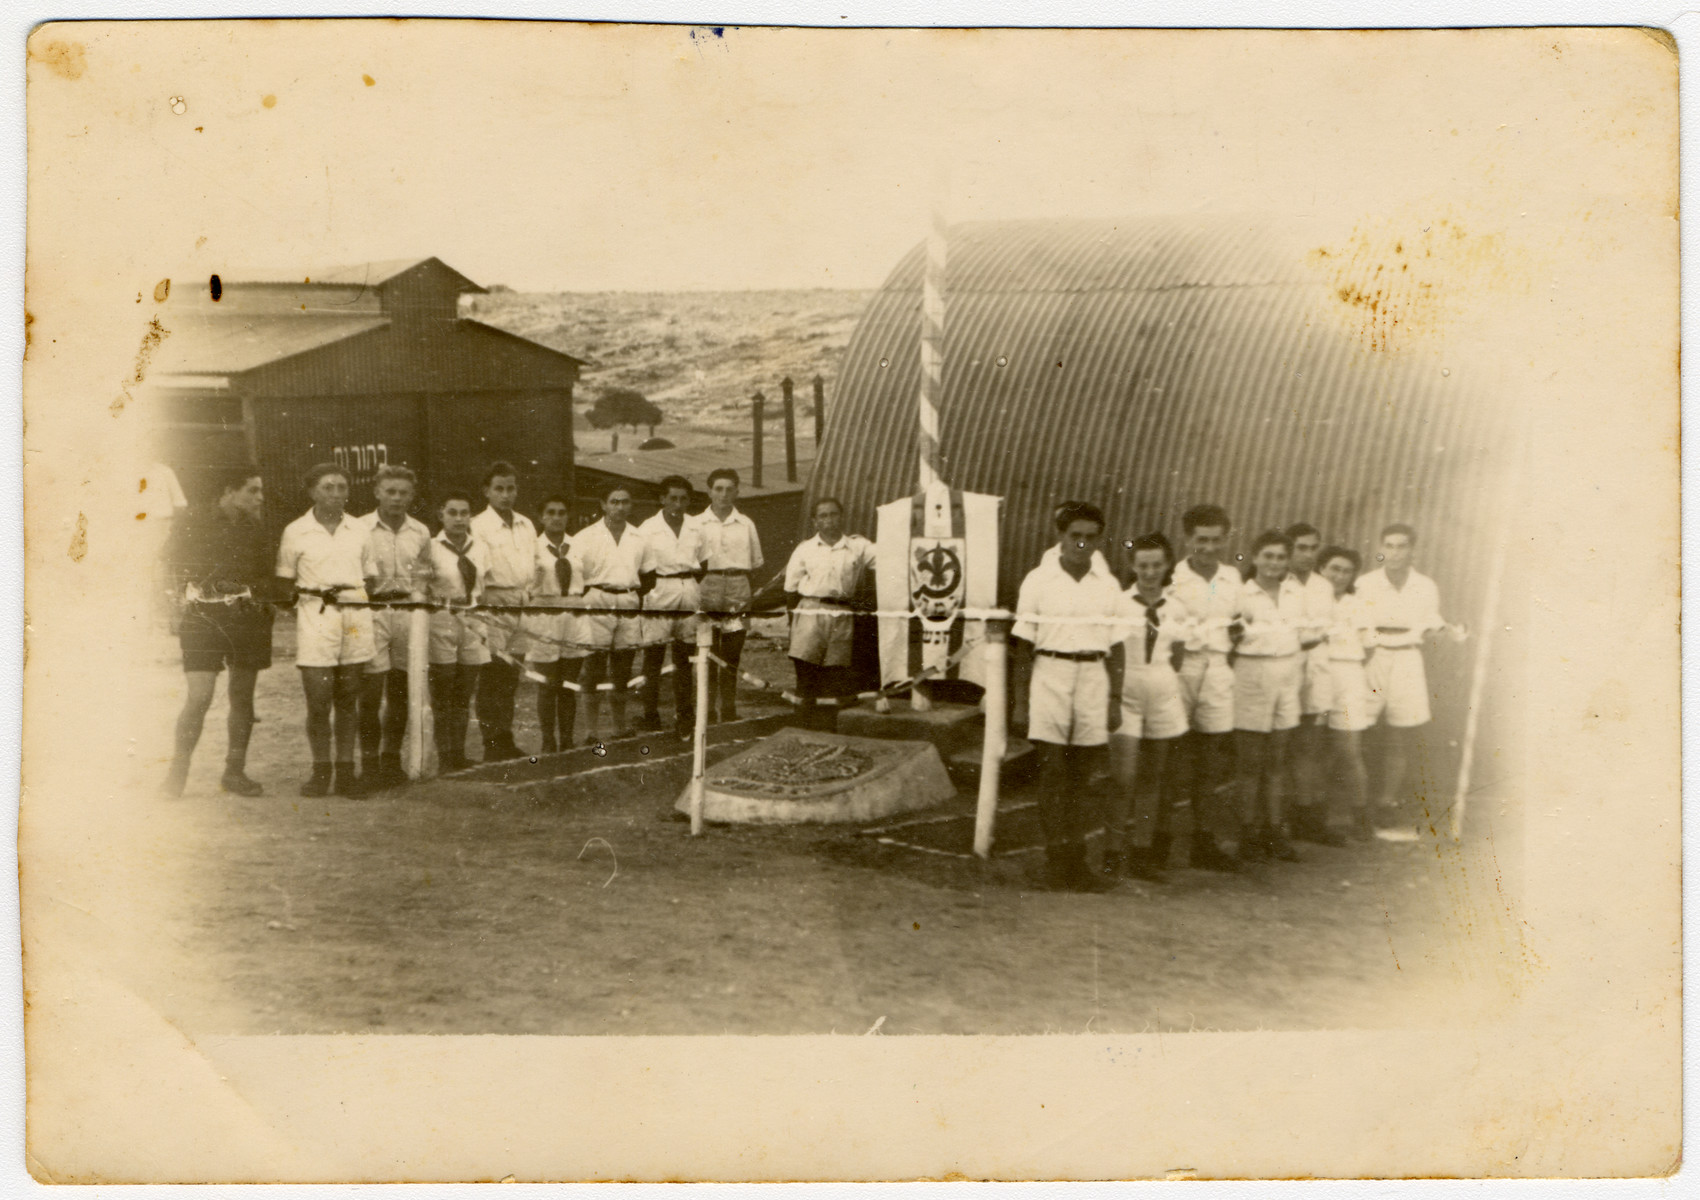 Group portrait of members of Gordonia Zionist Youth movement standing next to a flag pole in the Cyprus internment camp.